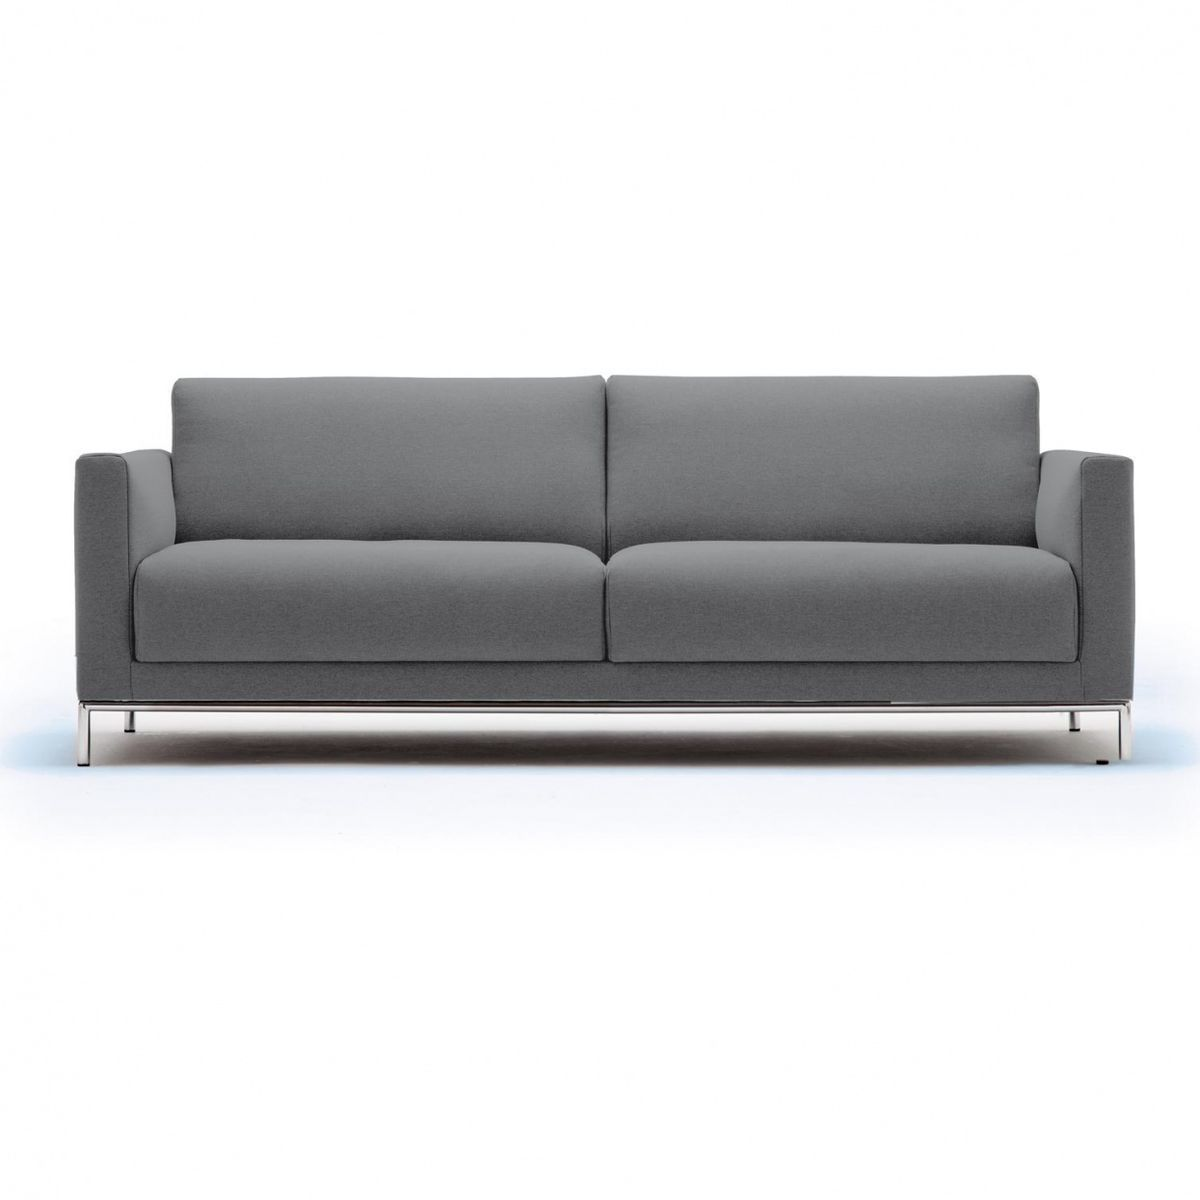 Freistil 141 3 seater sofa frame chrome freistil rolf for Freistil 141 rolf benz